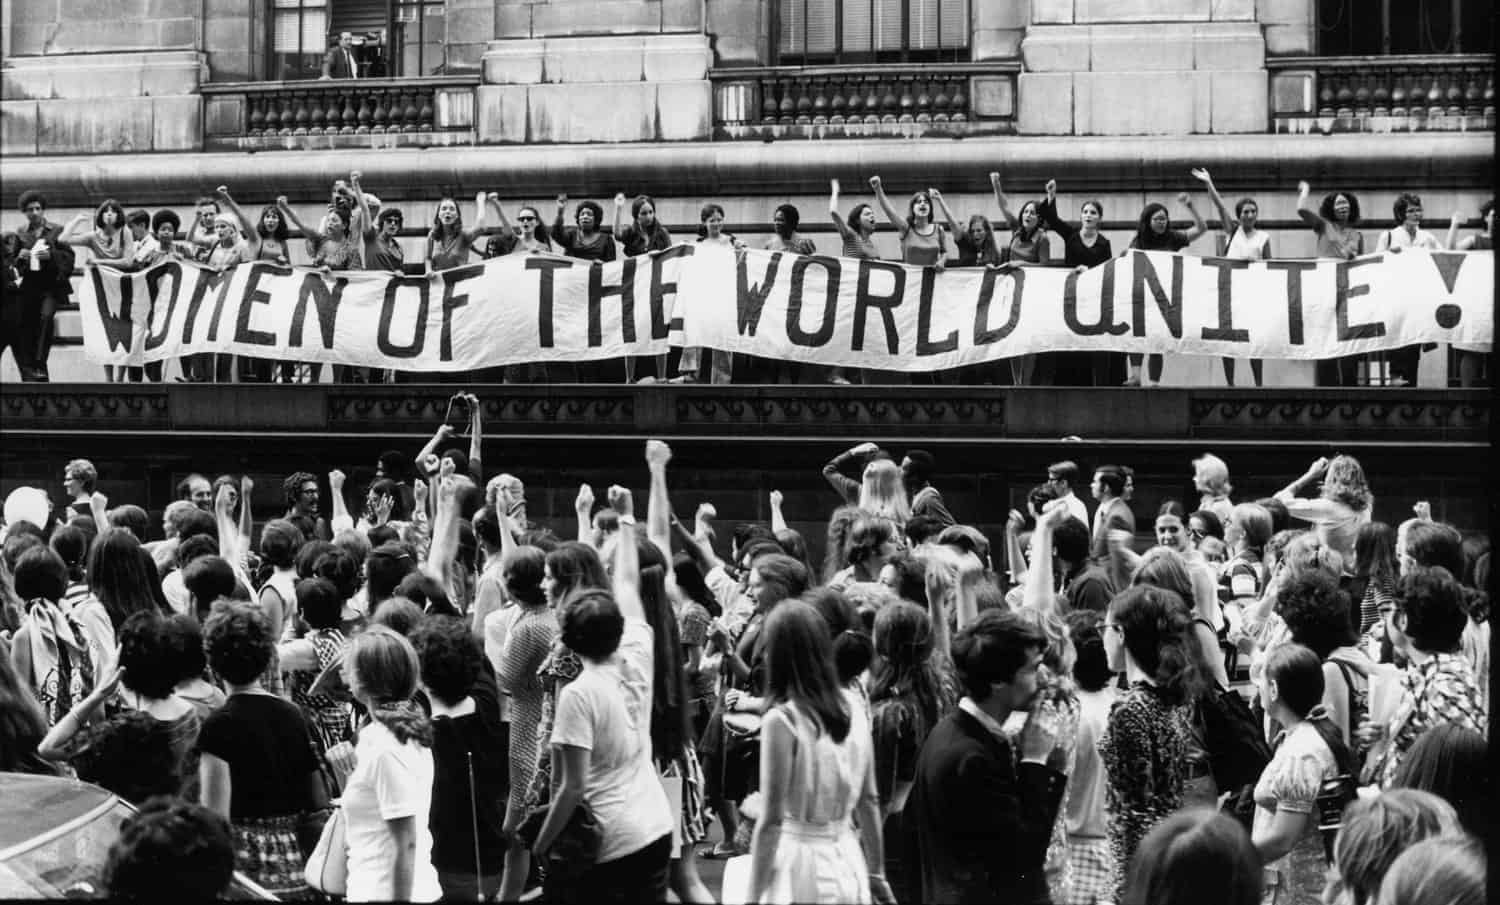 To commemorate the 50th anniversary of Women's Suffrage in the United States, record numbers of women march along 5th Avenue, past a banner that reads ''Women of the World Unite!', New York, New York, August 26, 1970. (Photo by Fred W. McDarrah/Getty Images)